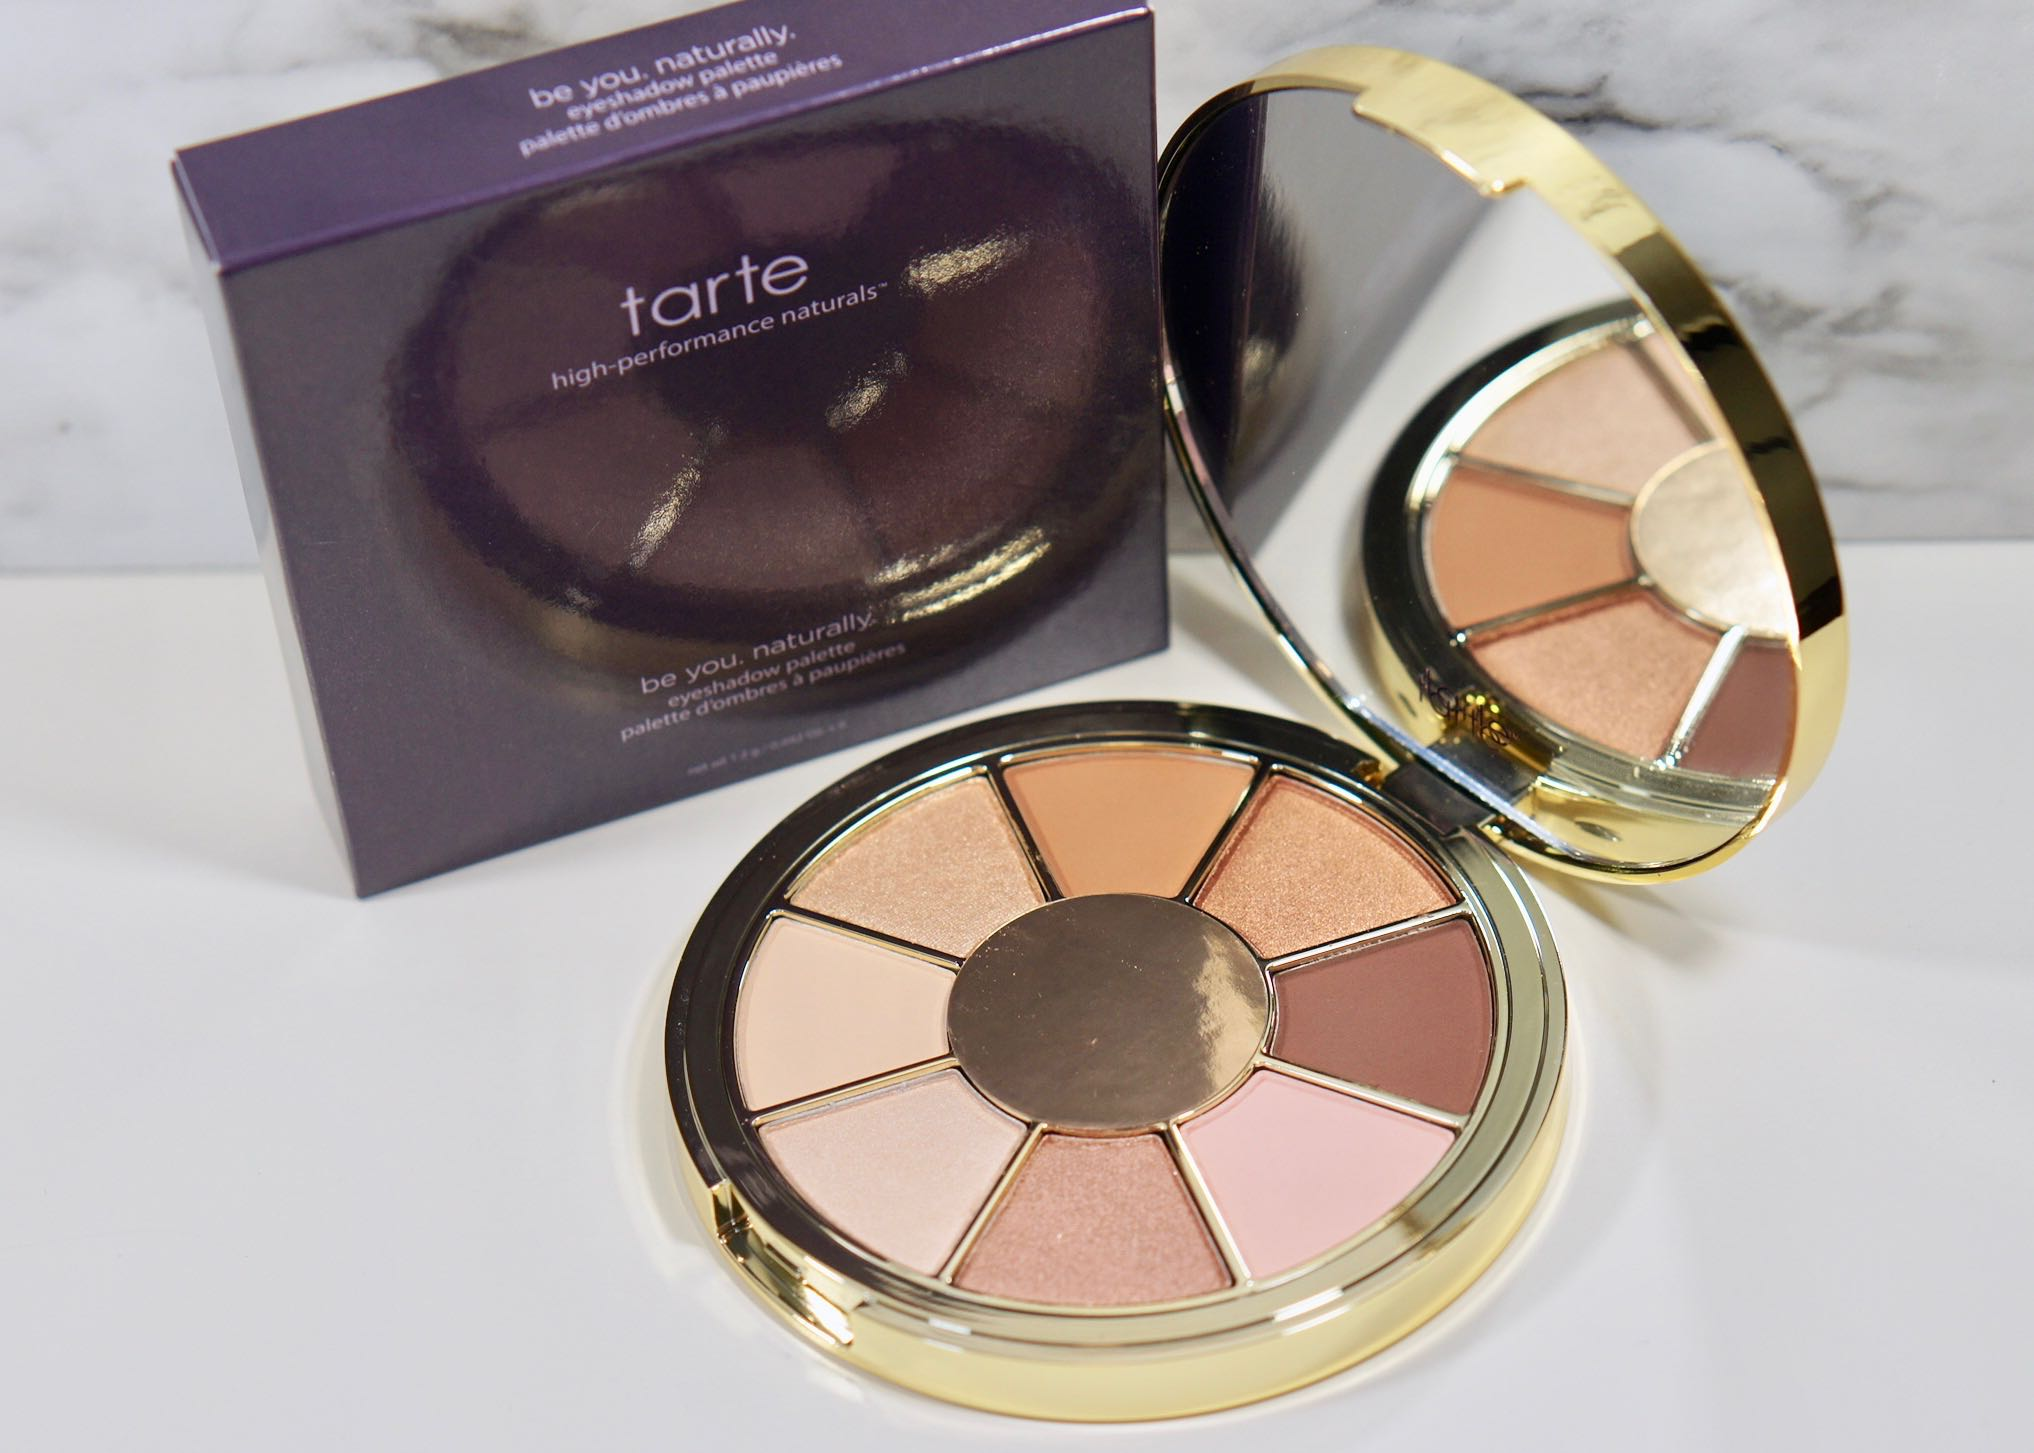 Boxy Charm June 2019=Getaway-Tarte-Be You. NaturallyBoxy Charm June 2019=GetawayDSC01506.jpg